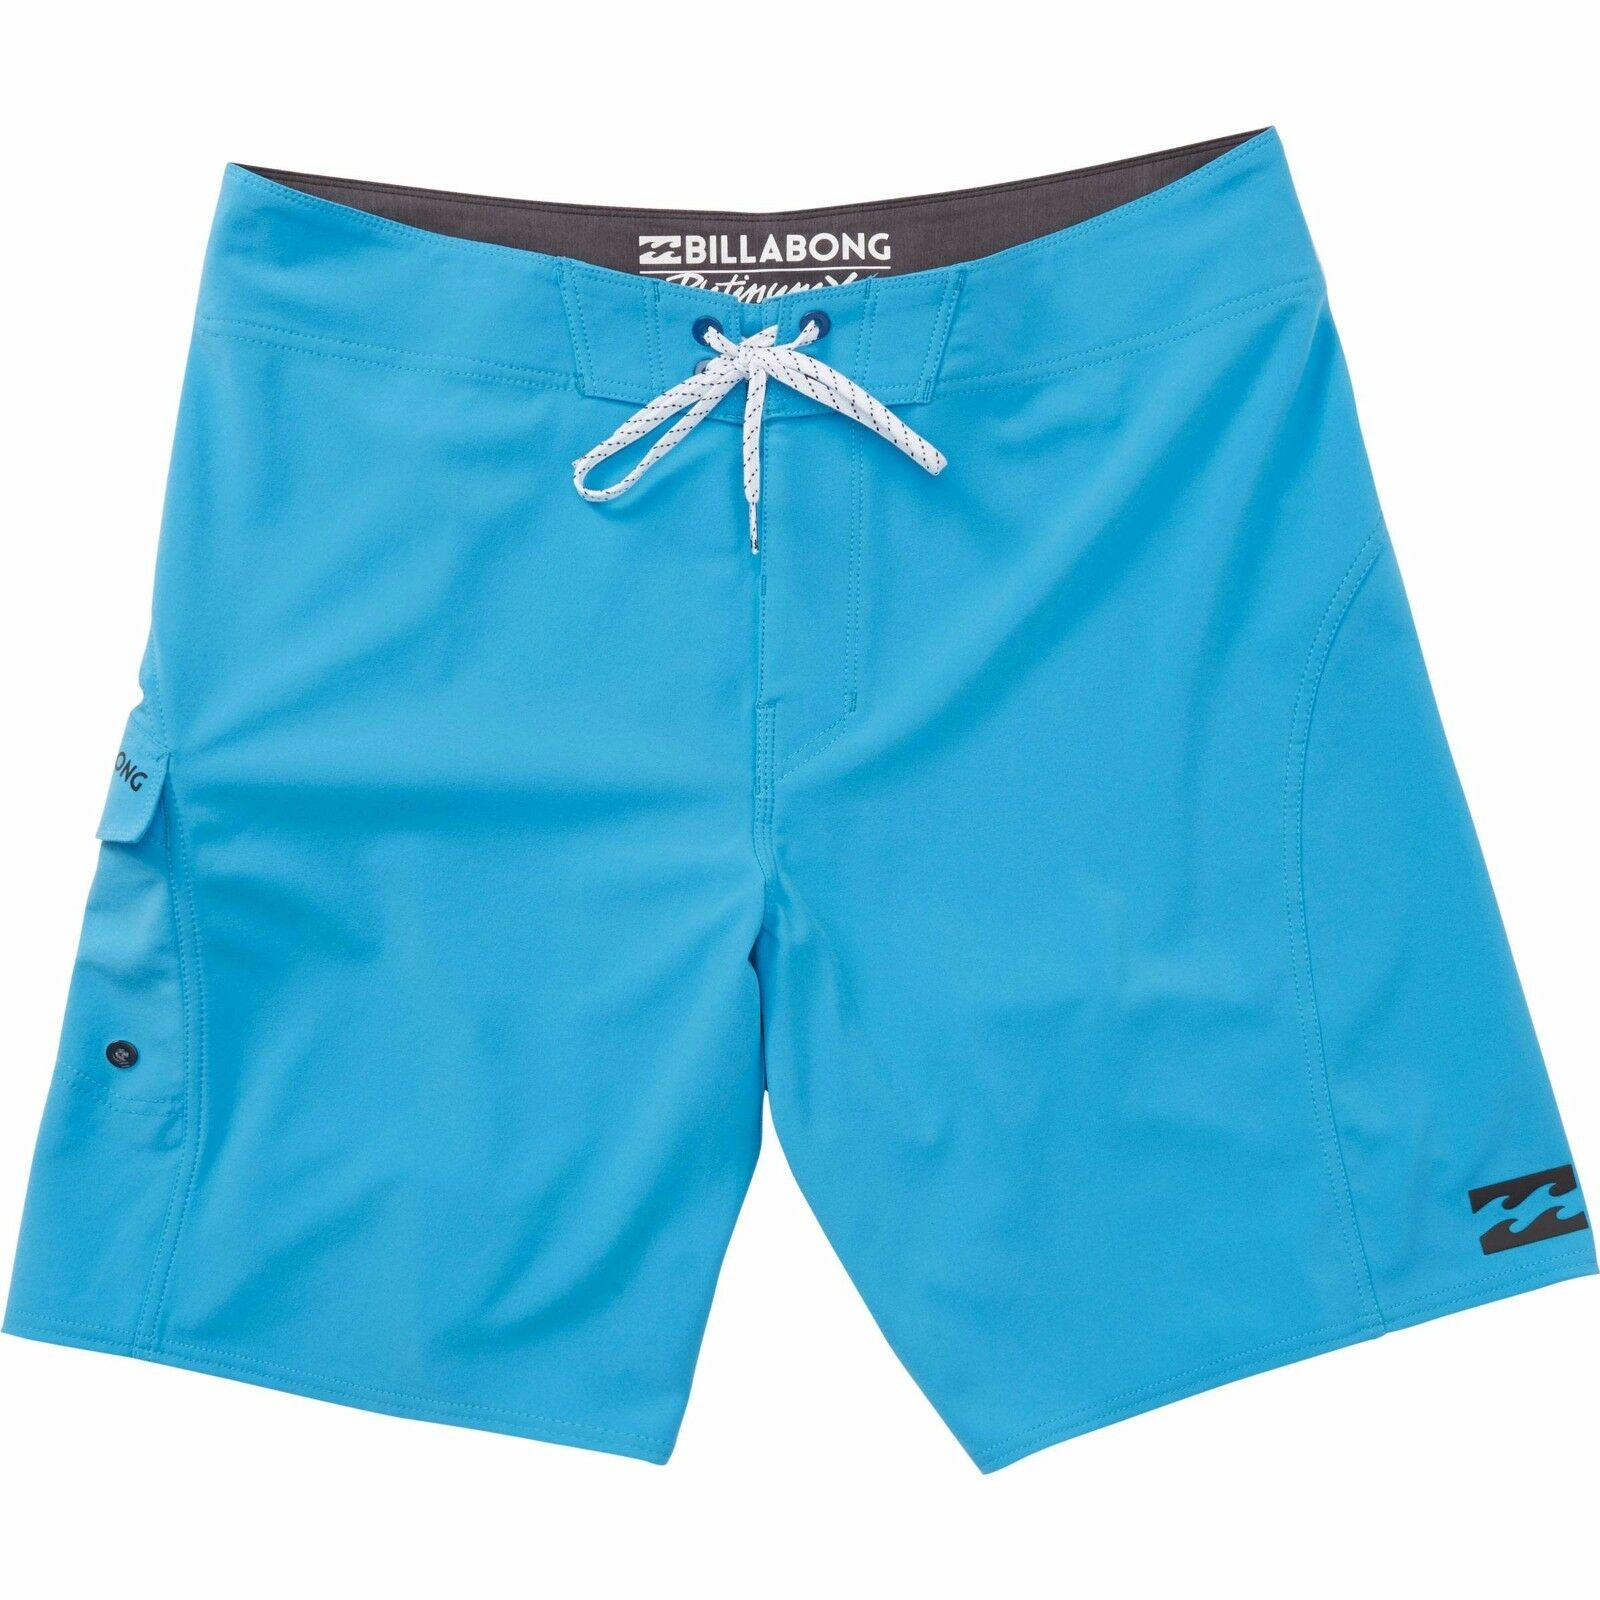 2016 NWT MENS BILLABONG ALL DAY X BOARDSHORTS  32 bluee performance fit